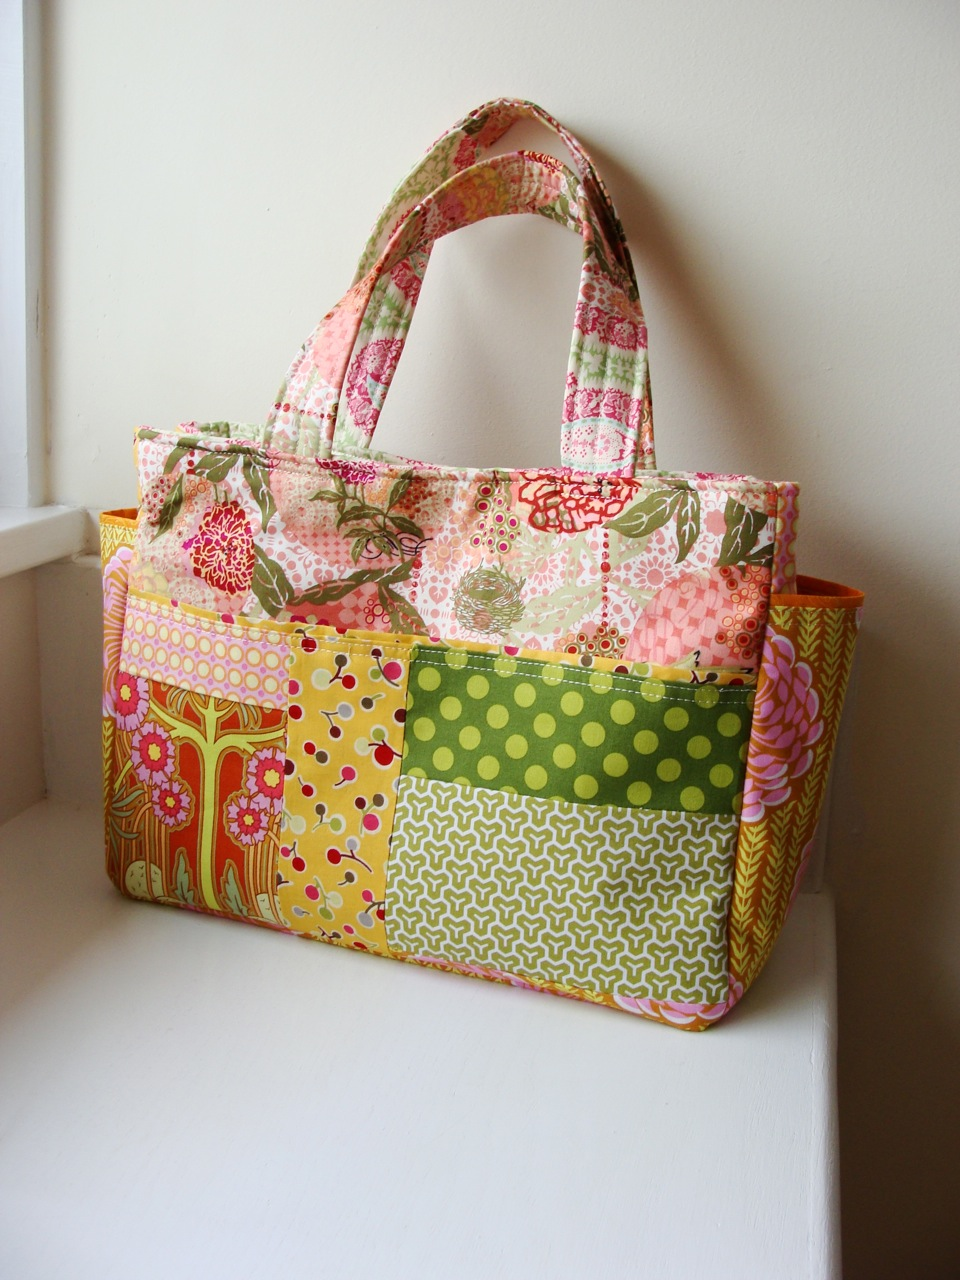 Watermelon Wishes Presenting Bag No 360 And 361